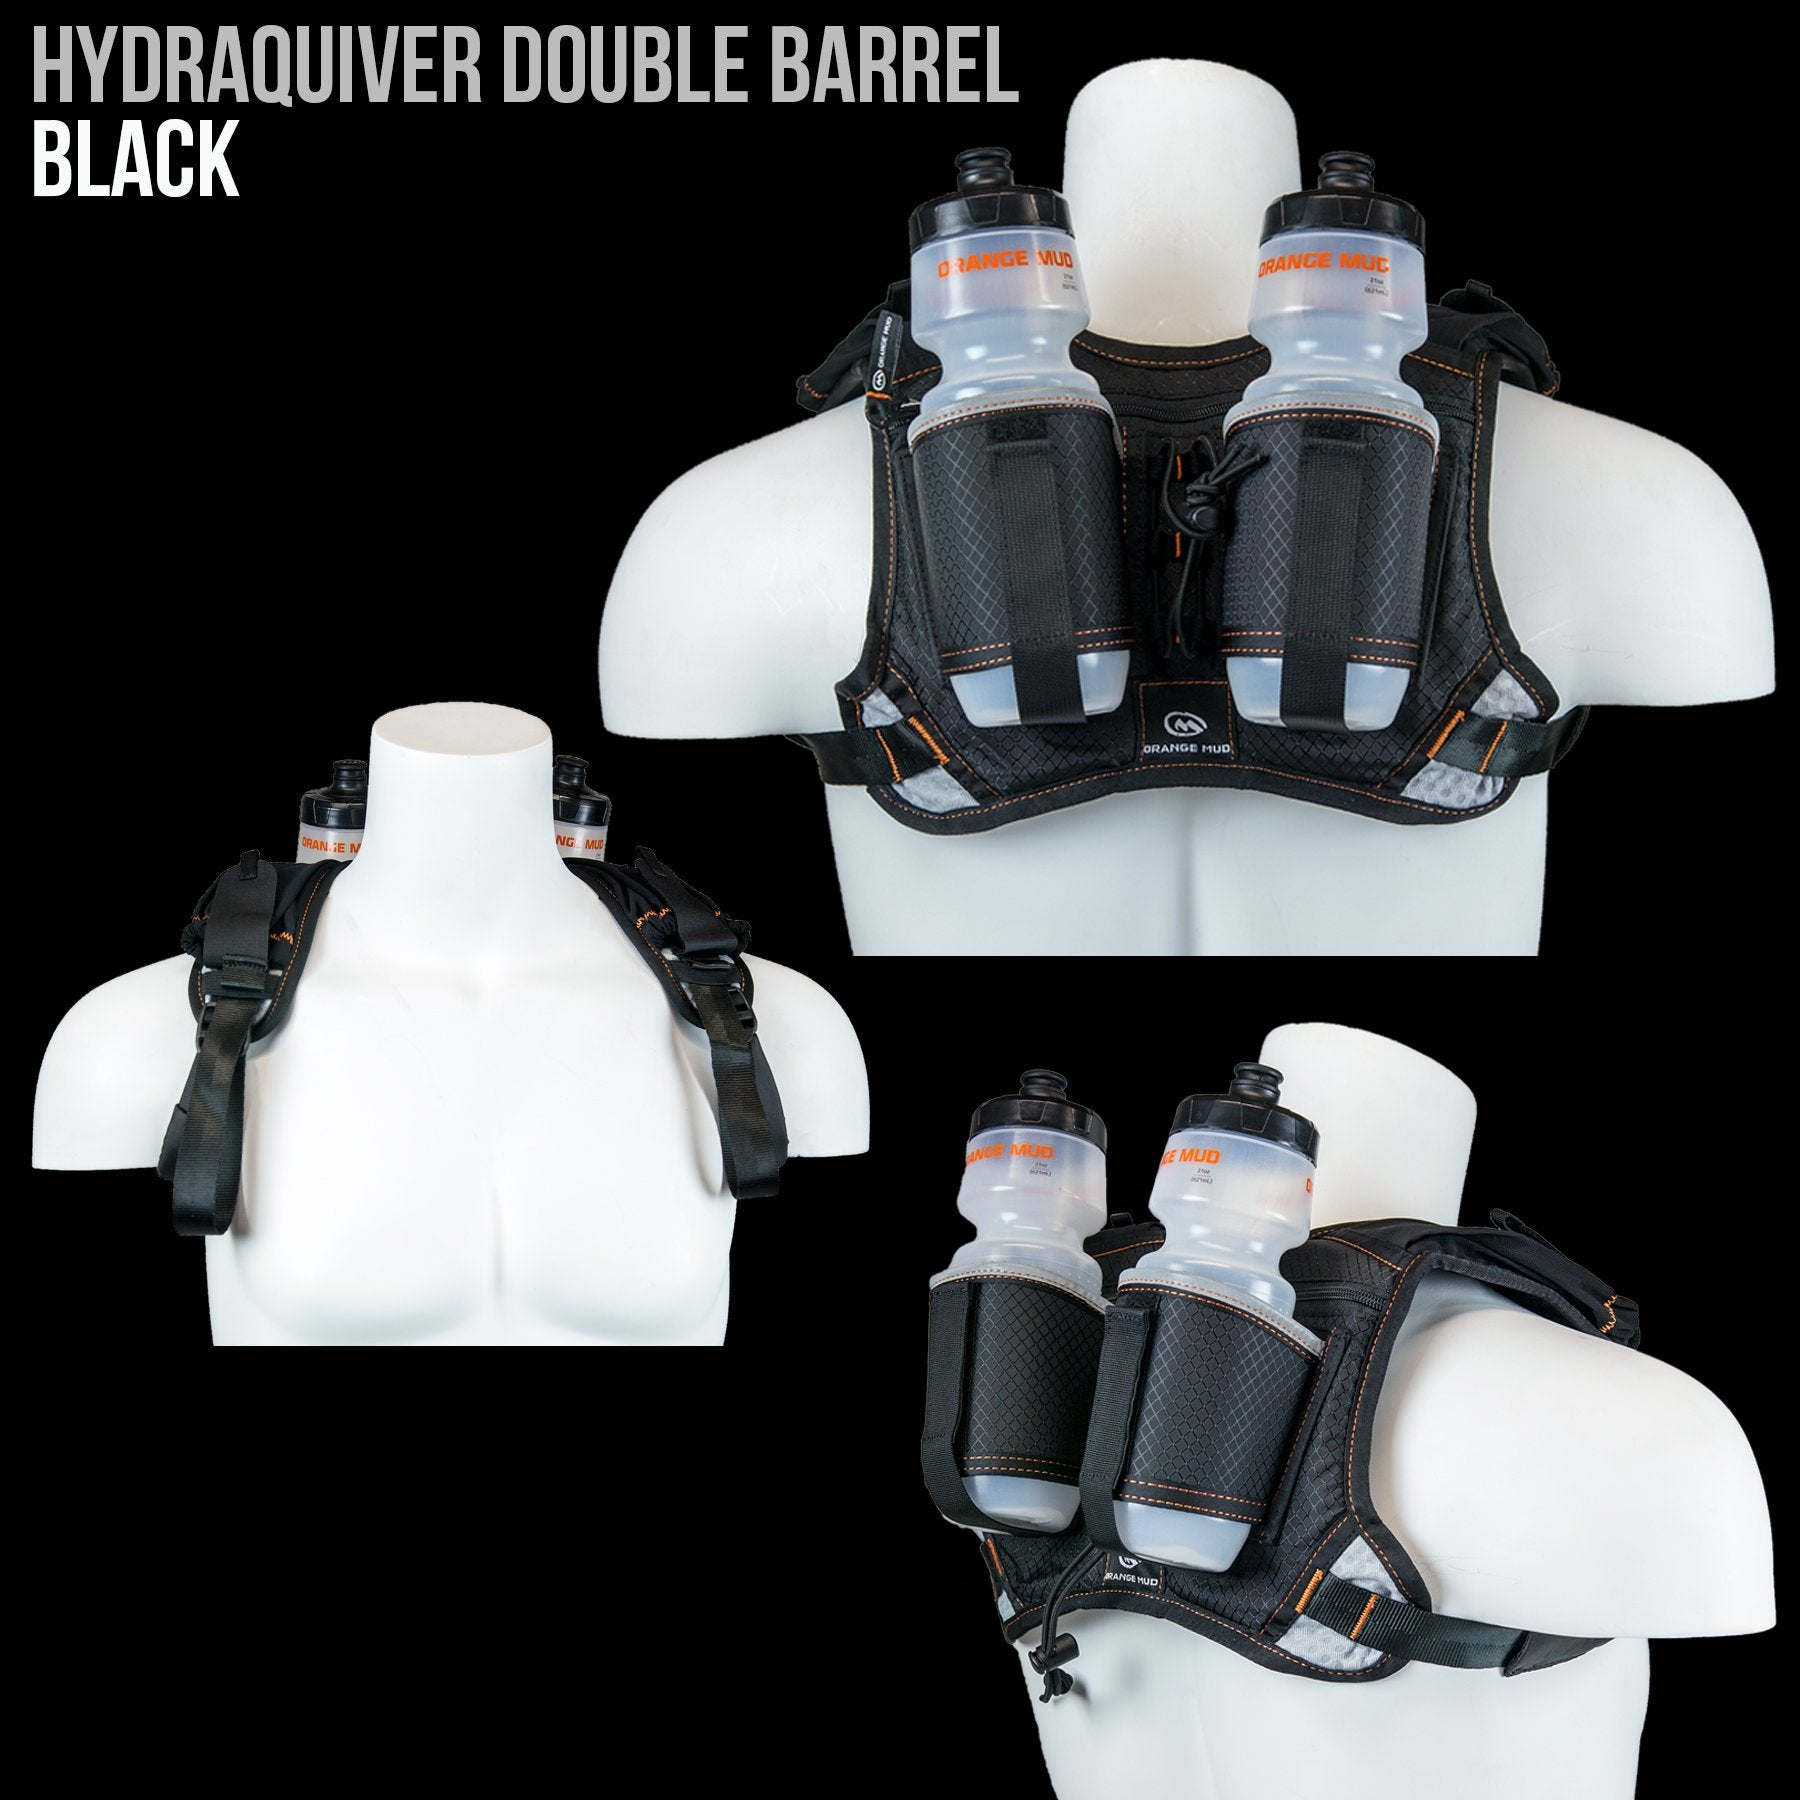 8e99b4a6c6 HydraQuiver Double Barrel Hydration Pack: Ideal for runners with larger  chest diameters and for runs greater than 2 hours.